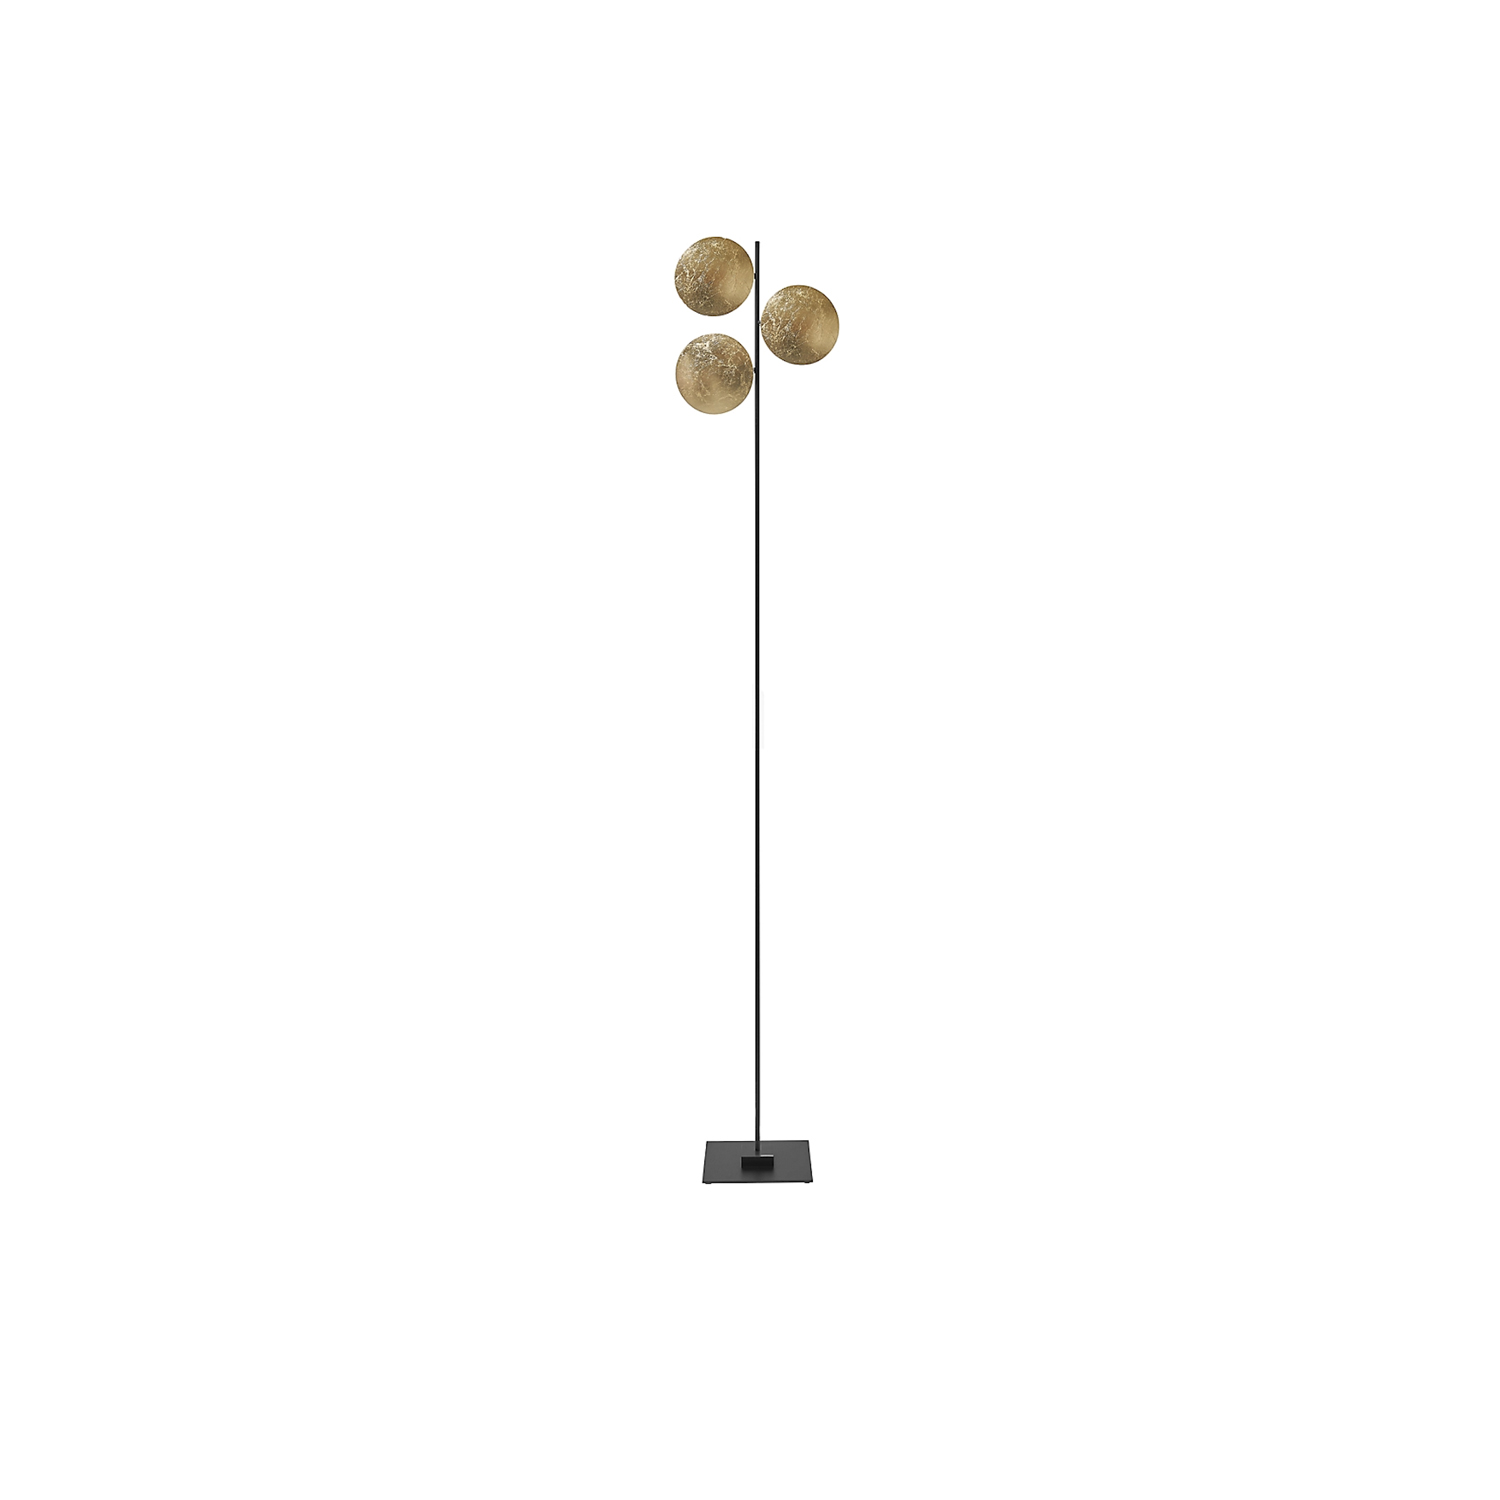 Lederam F3 Floor Lamp - Lederam embodies the accuracy of the motion required to draw a line. The warm, softly coloured disks surround a LED module with an ultra-flat shape, which creates thin lamps and suspended forms with curved, sinuous lines. | Matter of Stuff